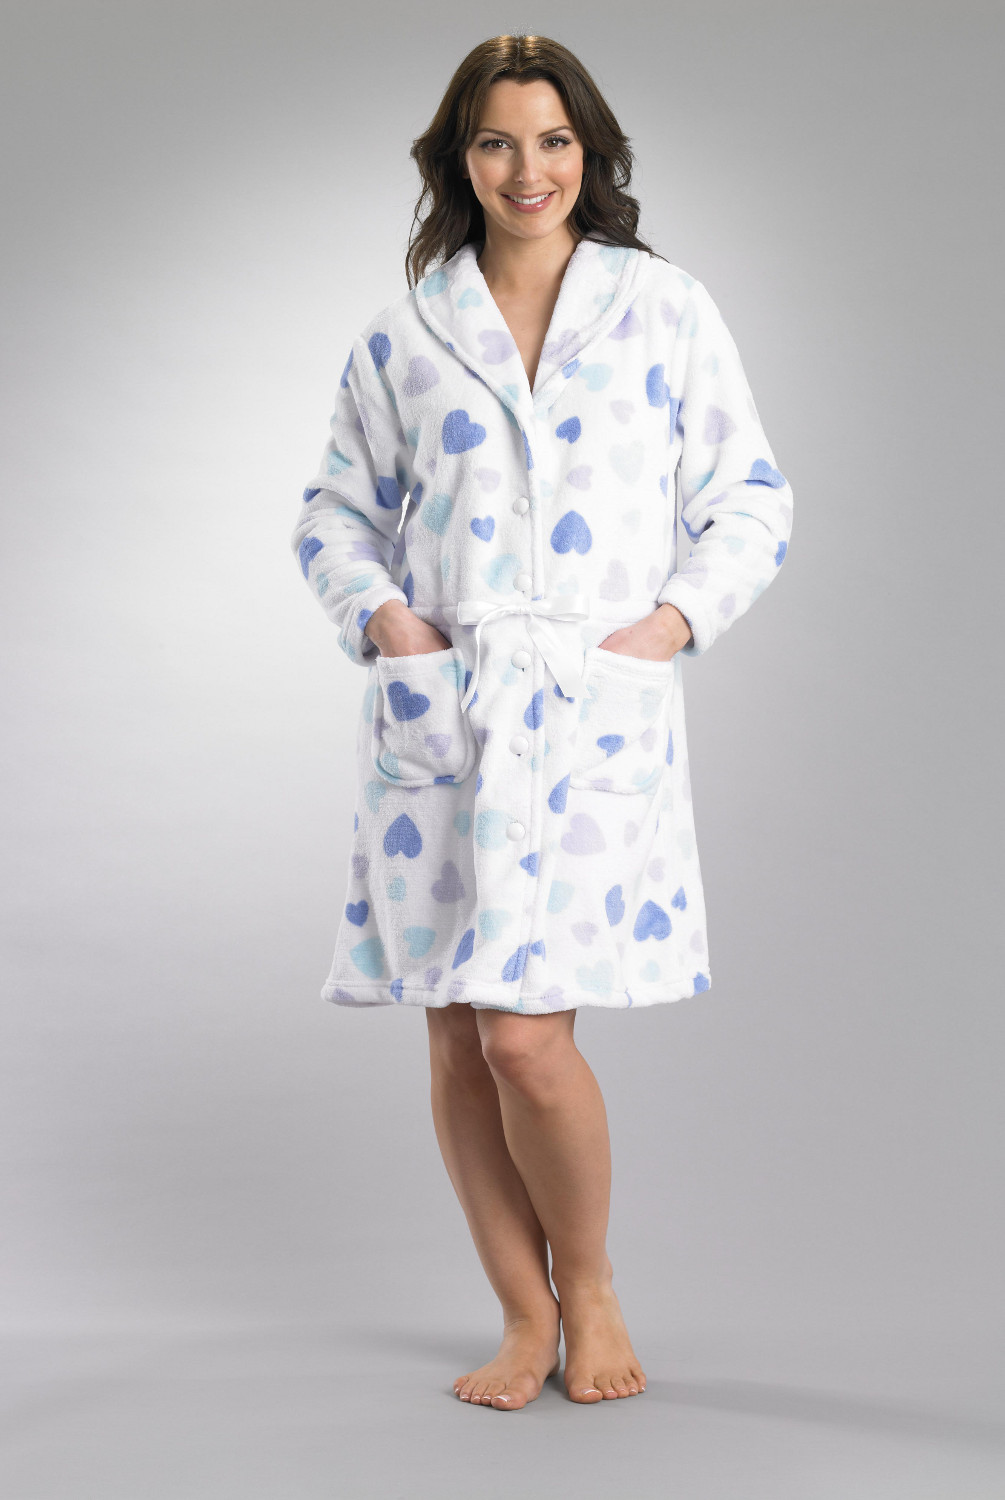 Slenderella Heart Pattern Button Up Bath Robe Ladies Soft Fleece ...